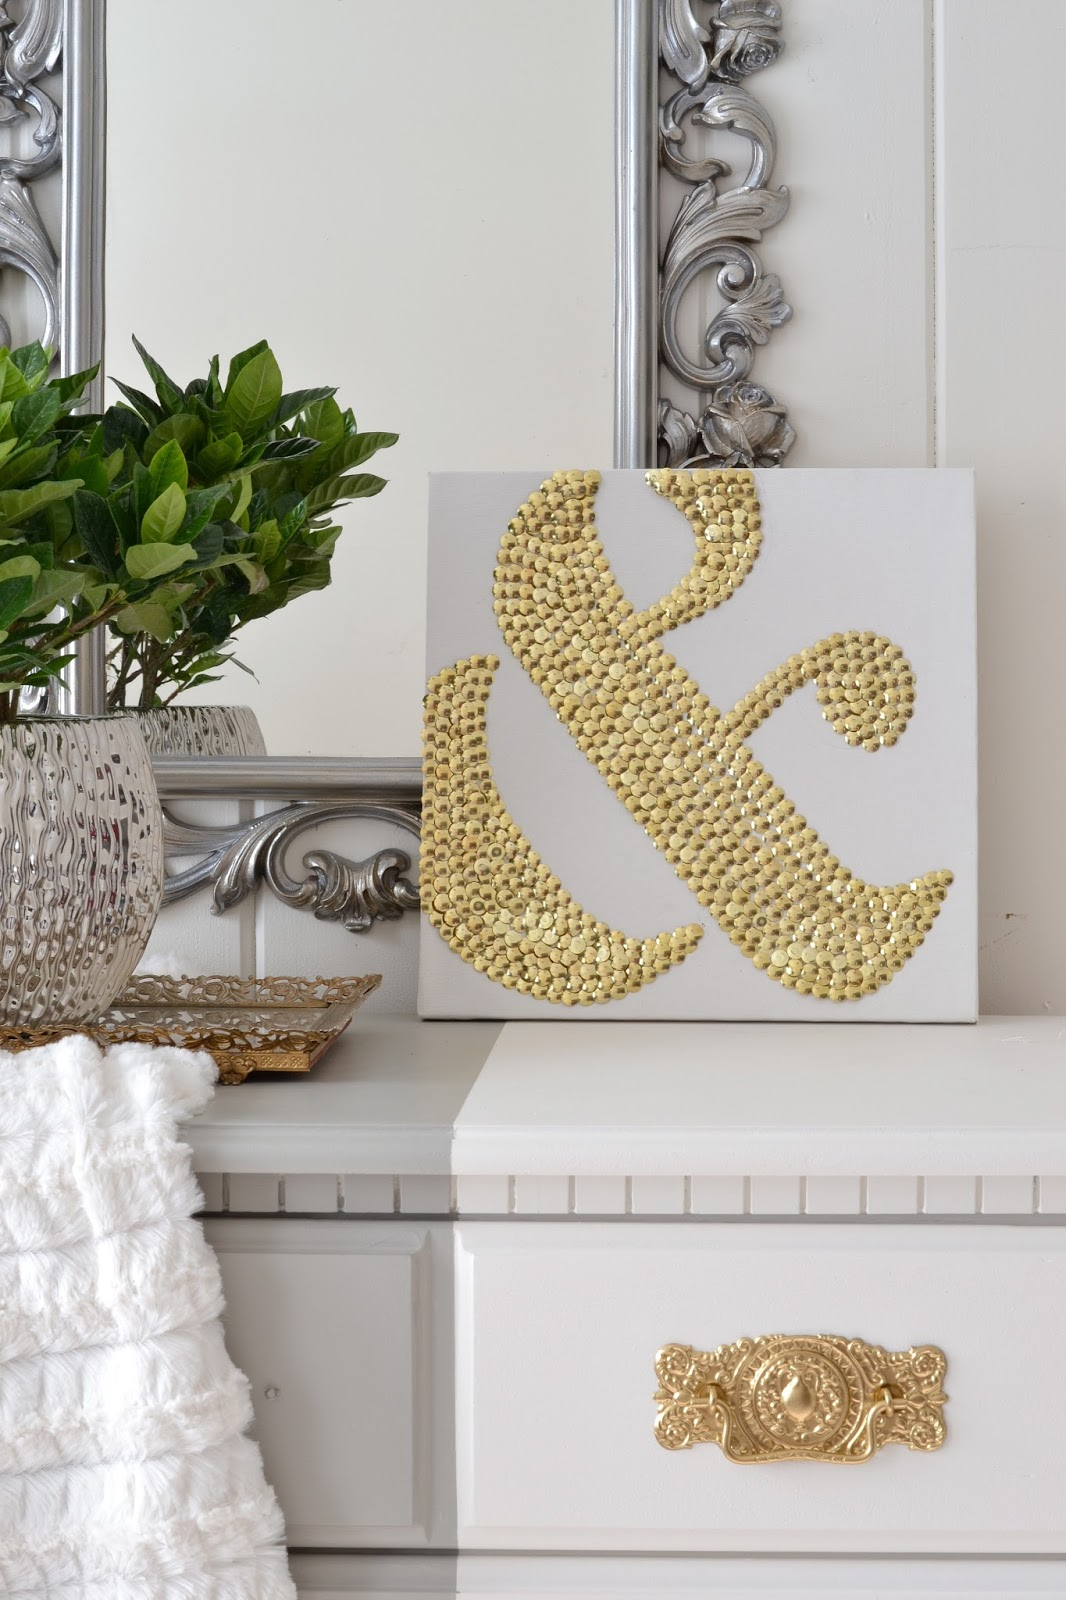 Ampersand Art Using Thumbtacks